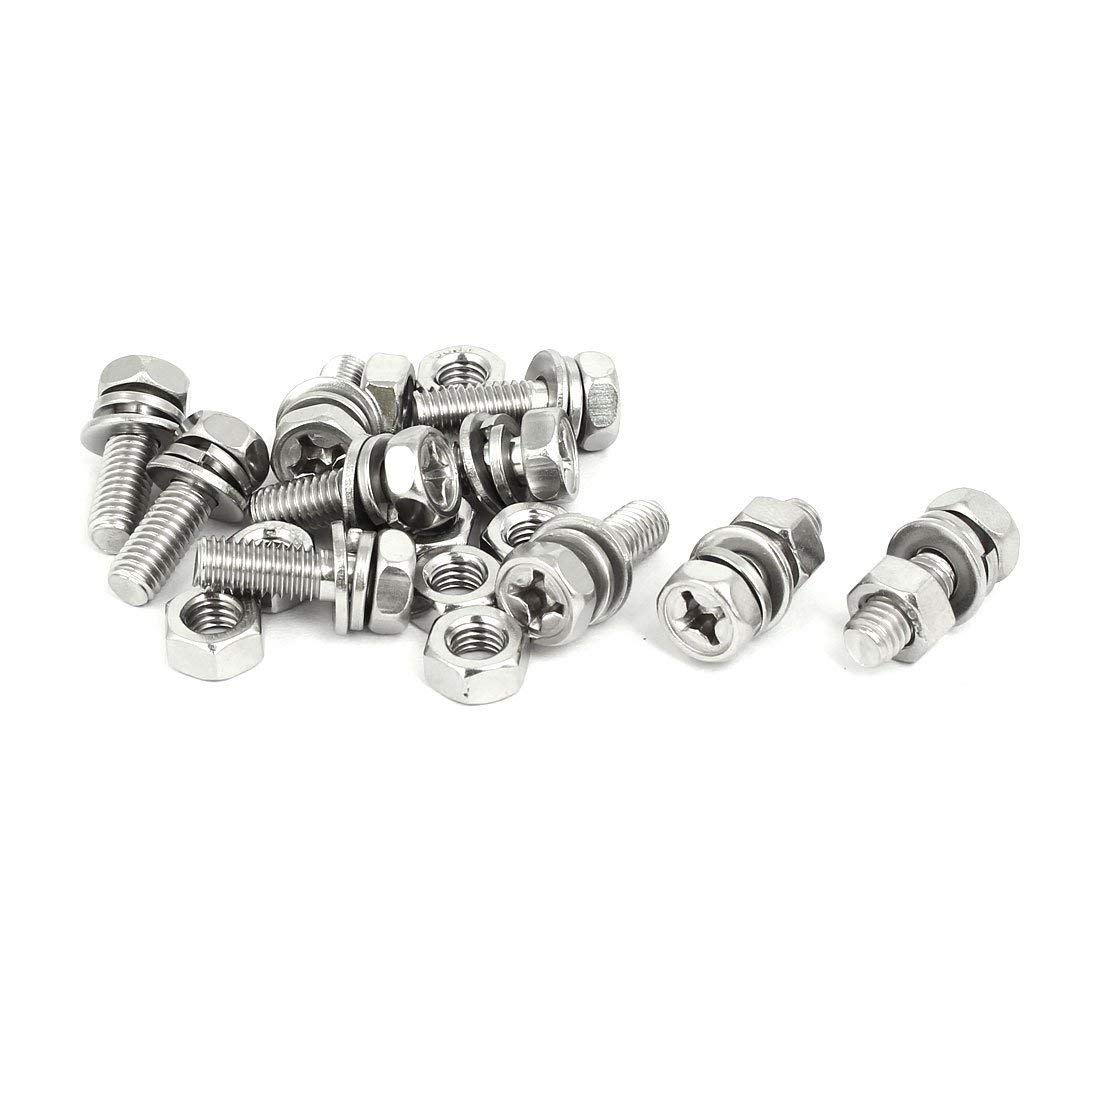 uxcell M6x18mm 304 Stainless Steel Phillips Drive Hex Head Screw Nut w Washer 10 Sets